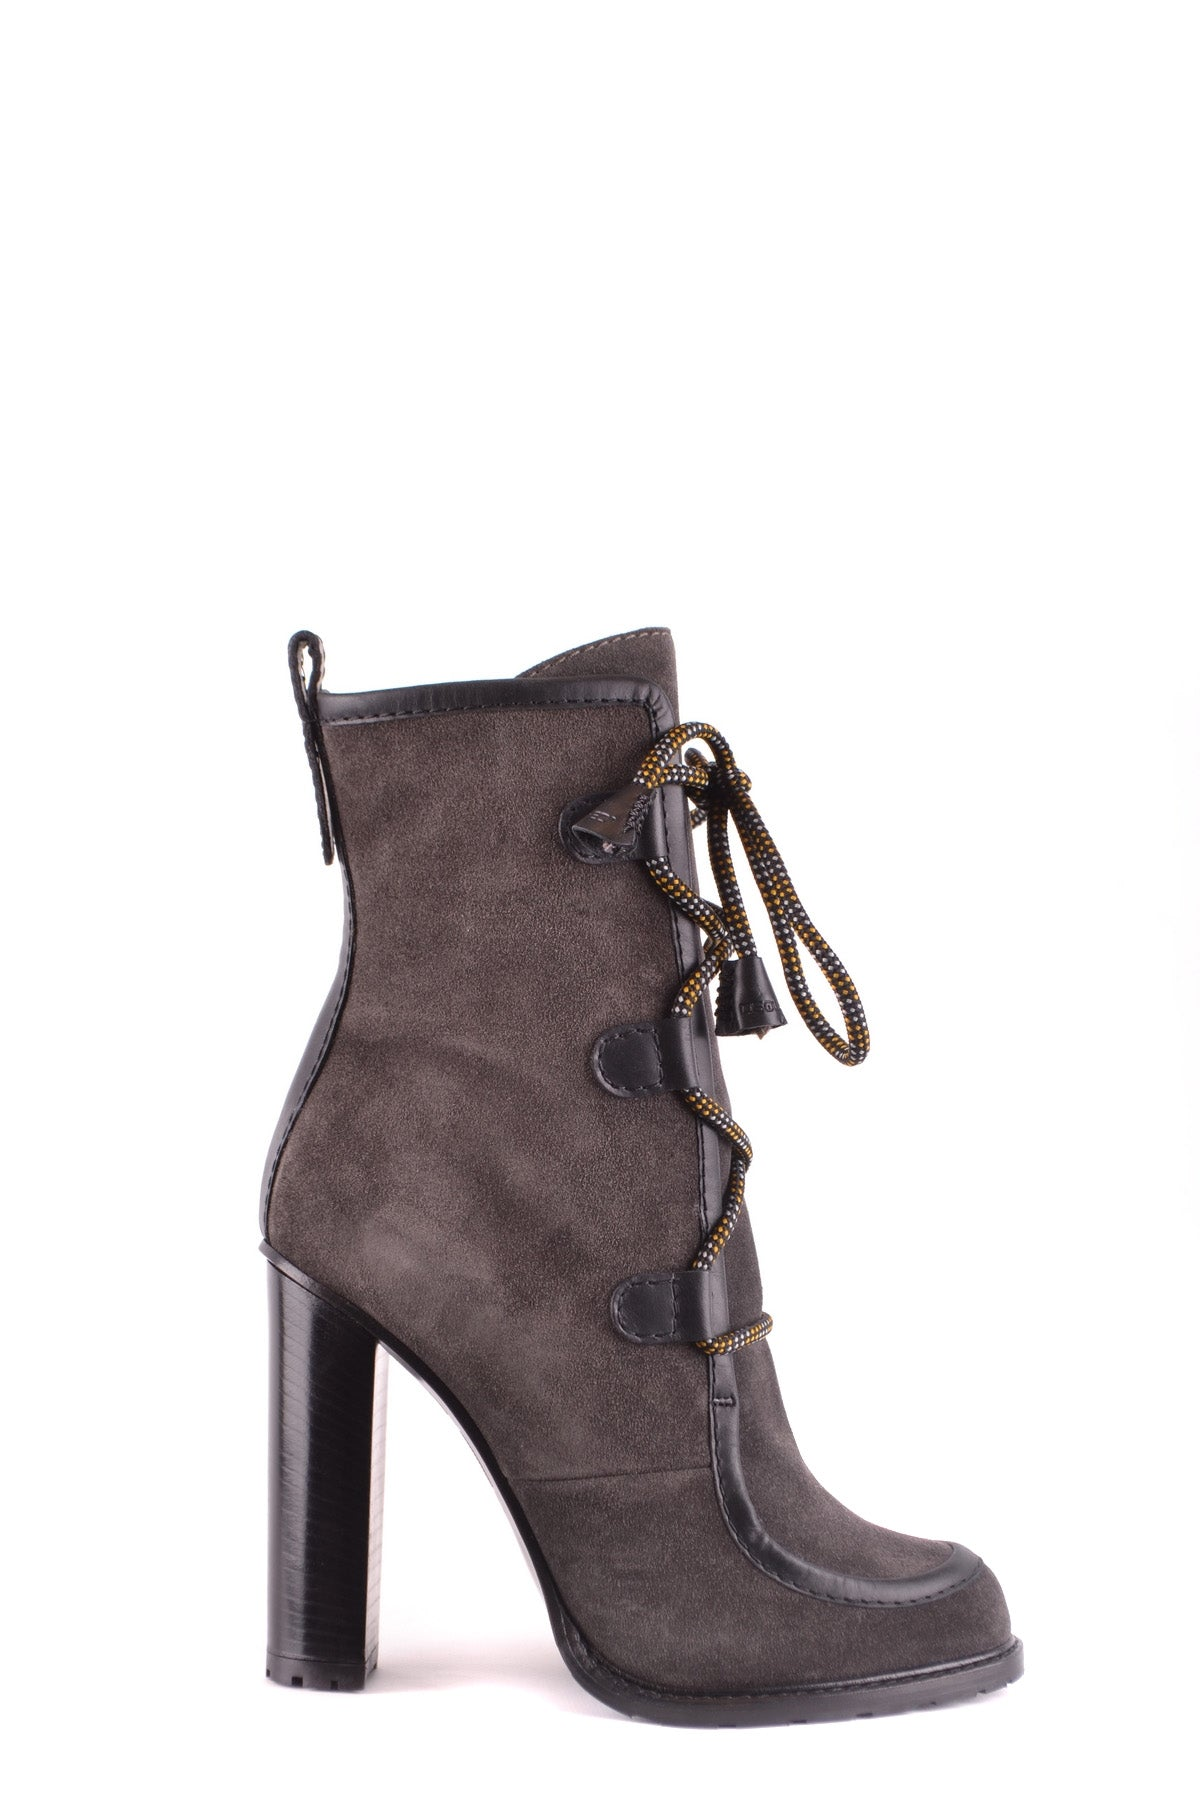 Shoes Dsquared-Bootie - WOMAN-37-Product Details Type Of Accessory: ShoesTerms: New With LabelYear: 2017Main Color: TurtledoveGender: WomanMade In: ItalySize: EuSeason: Fall / WinterComposition: Chamois 100%-Keyomi-Sook